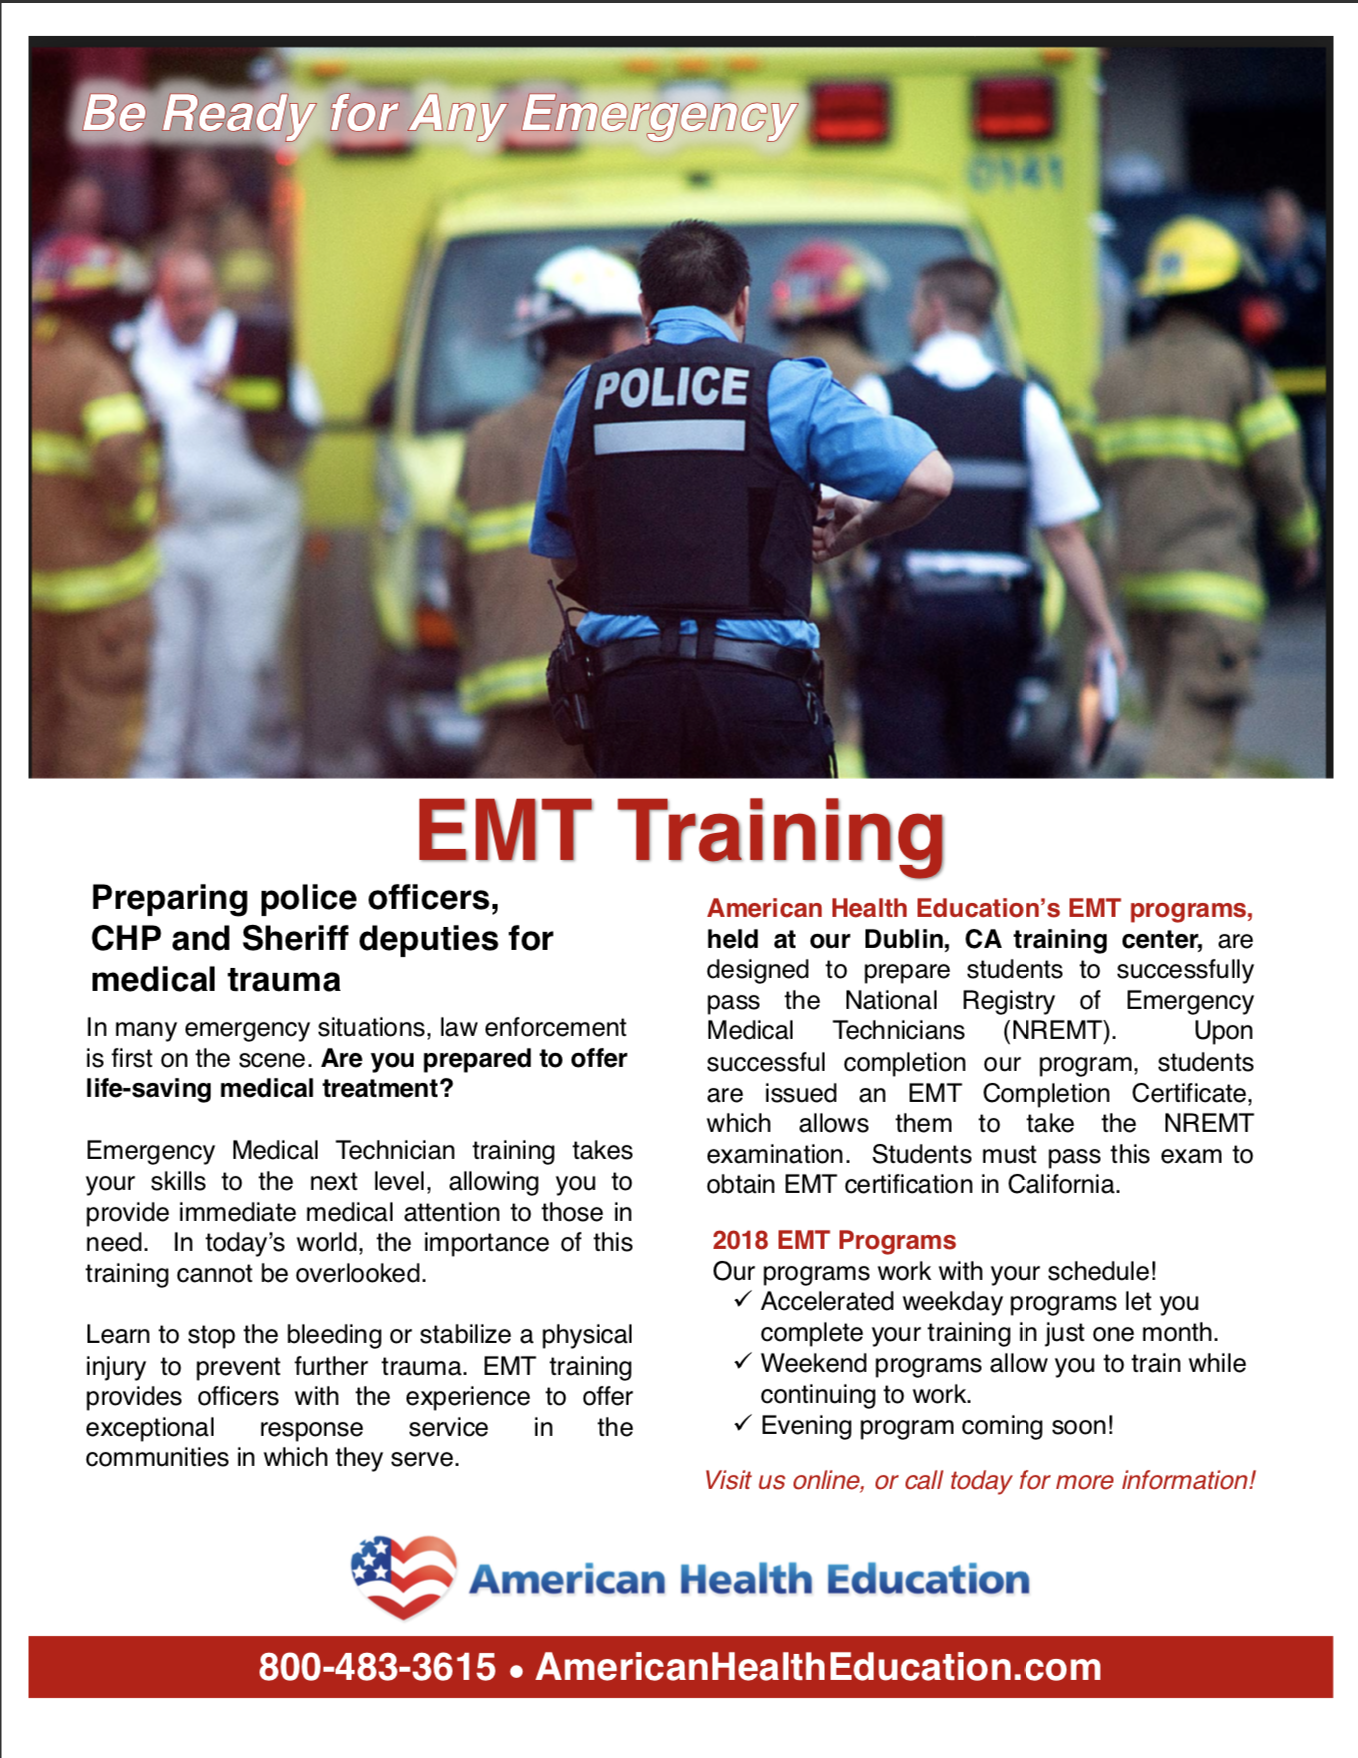 Pin By American Health Education On Become An Emt Pinterest Law